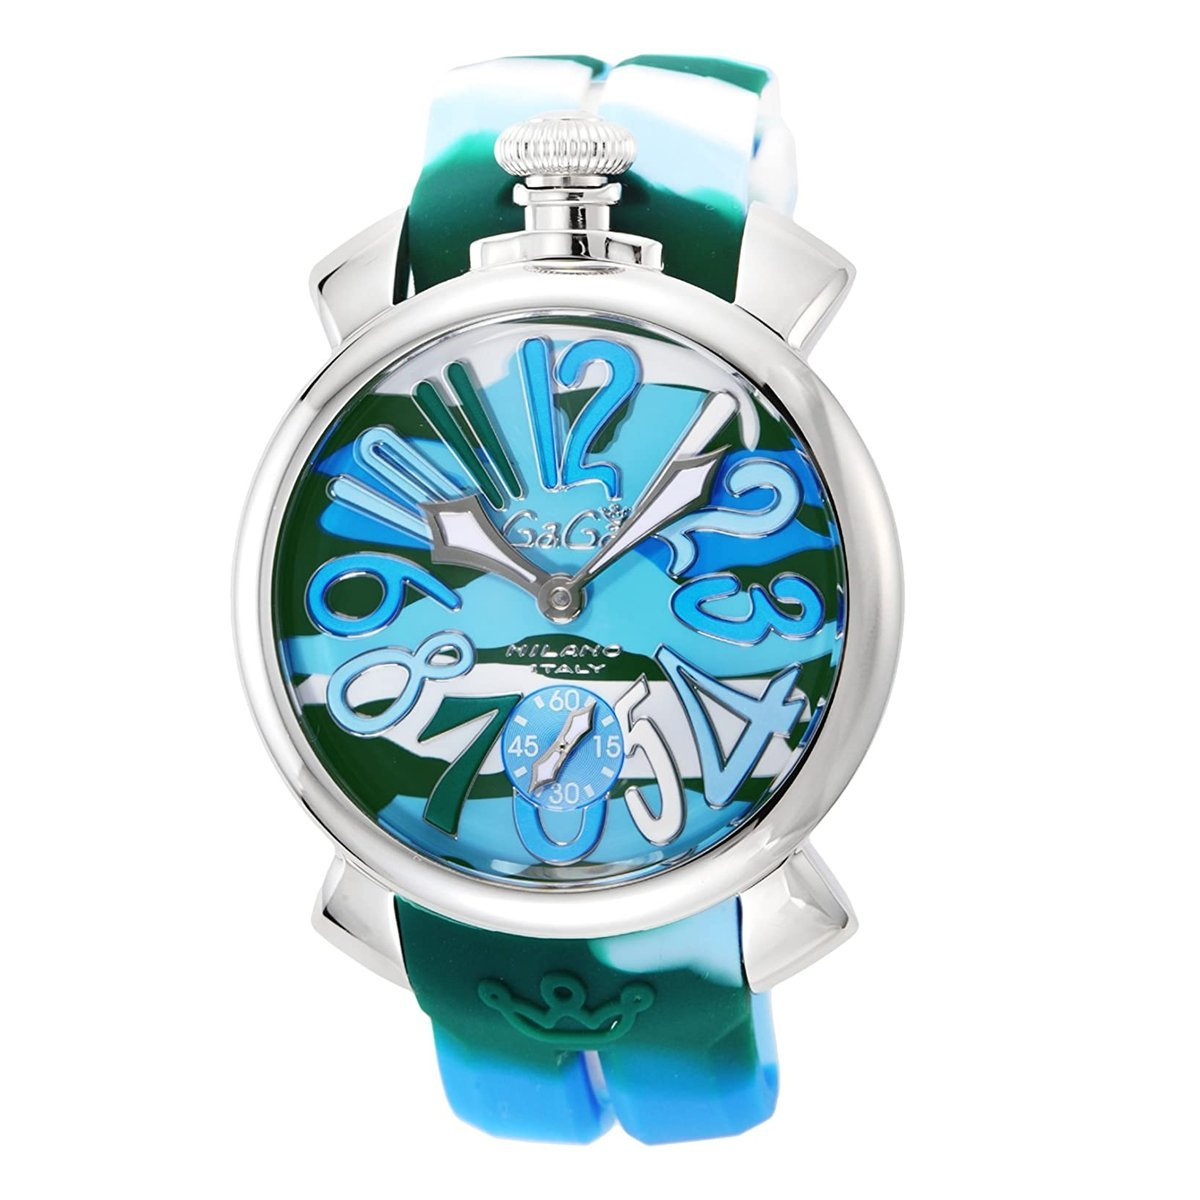 GaGà Milano Manuale 48MM Blue Camo - Watches & Crystals